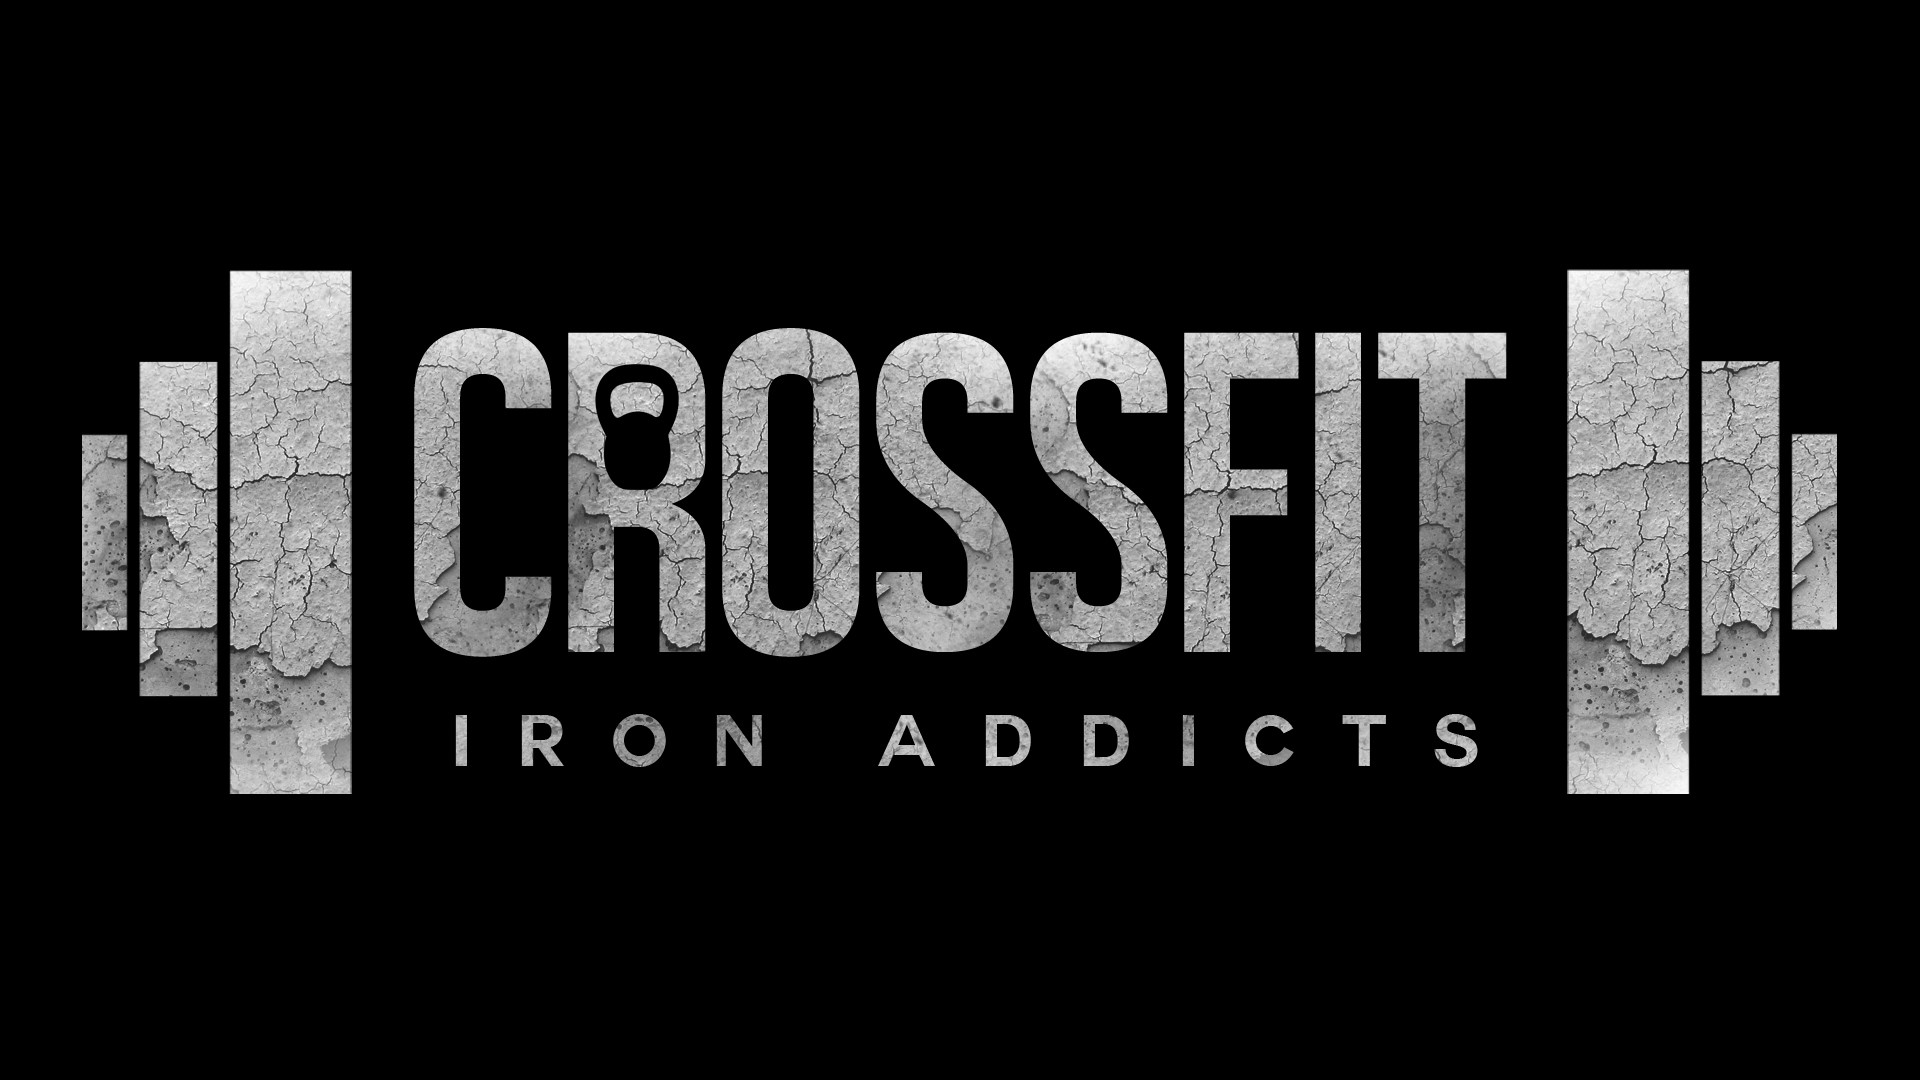 Crossfit Wallpaper 96 images in Collection Page 3 1920x1080